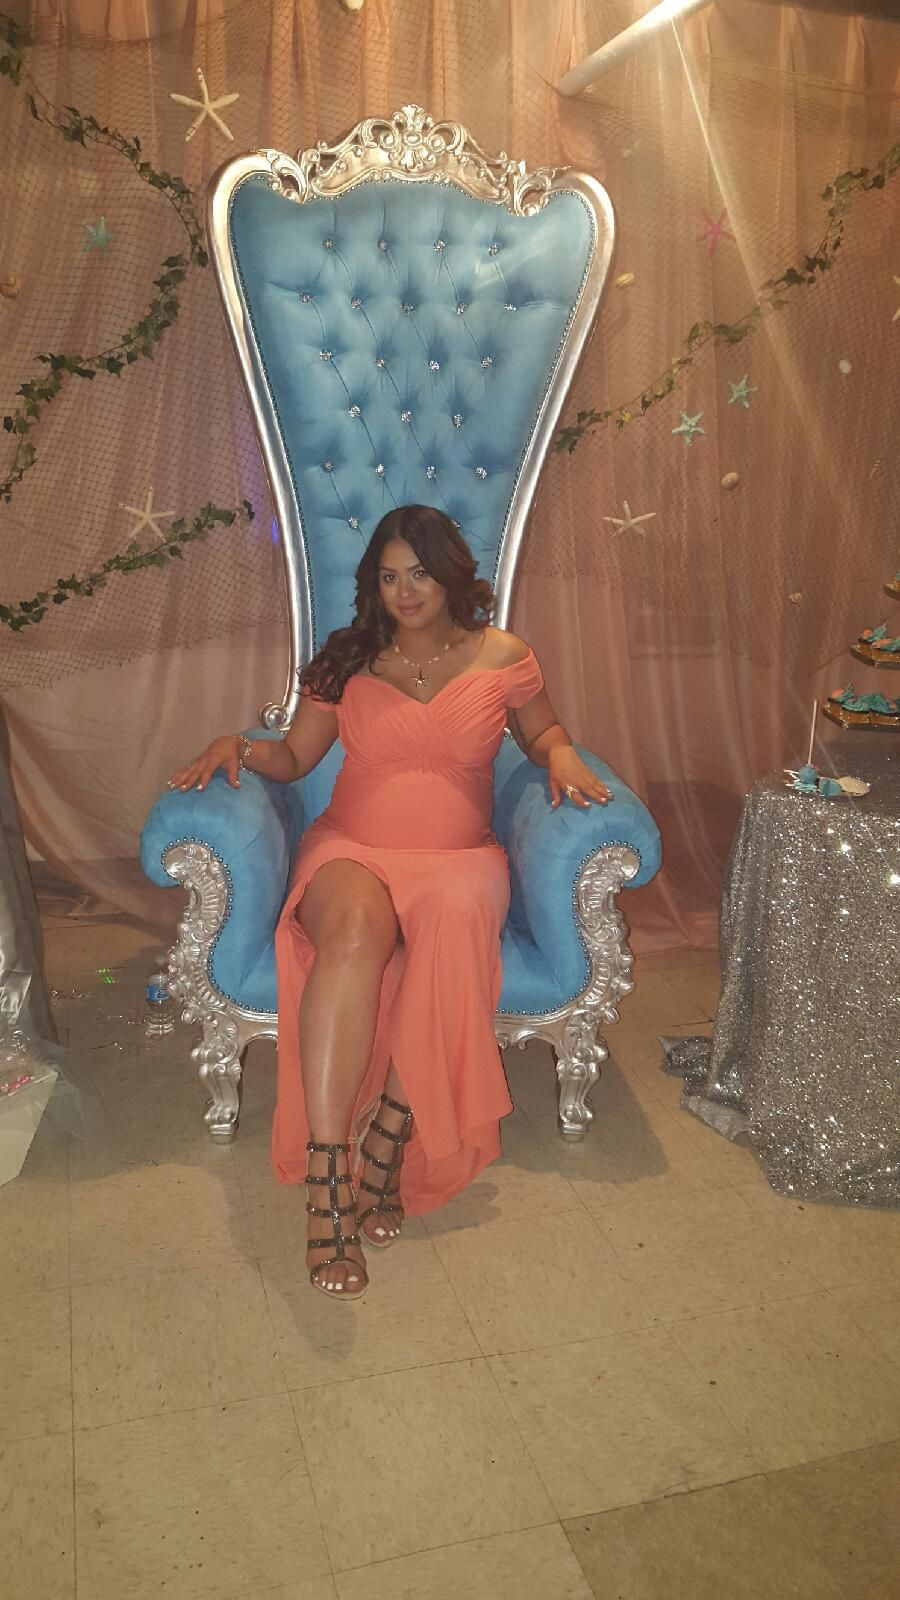 baby shower chair boy shower shower outfits throne chair event ideas